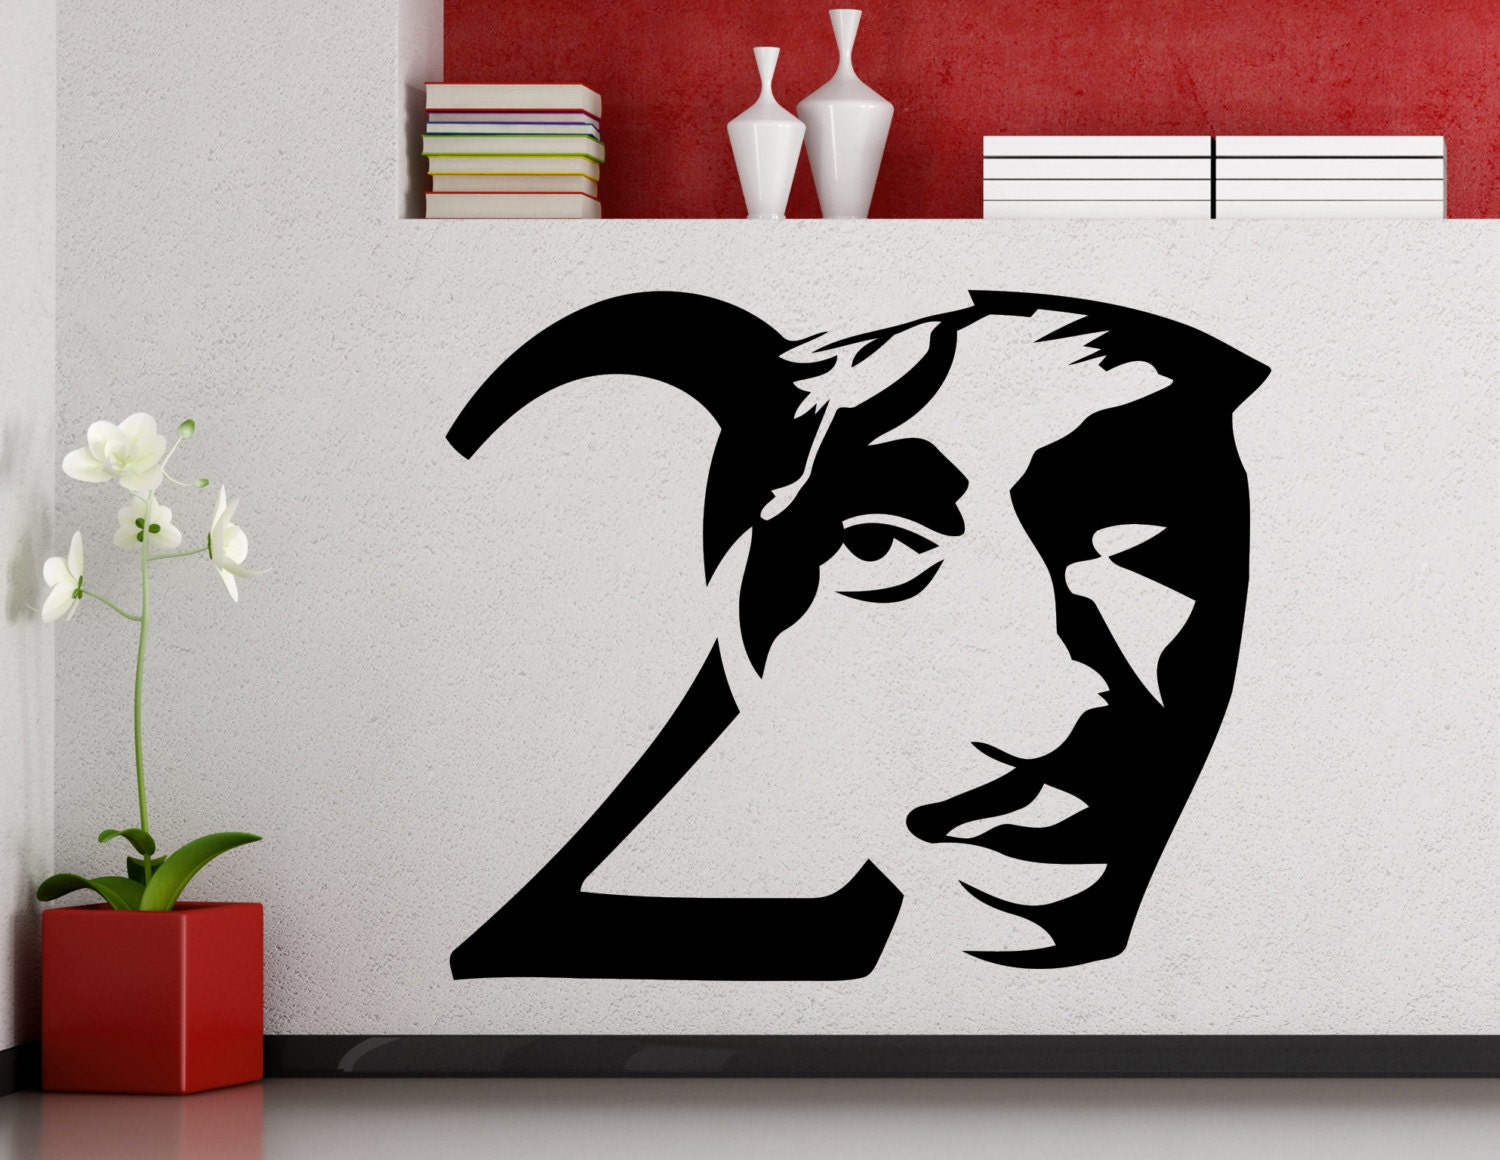 tupac wall mural tupac mural picture of la hood life 2pac mural for flexfit headwear on behance